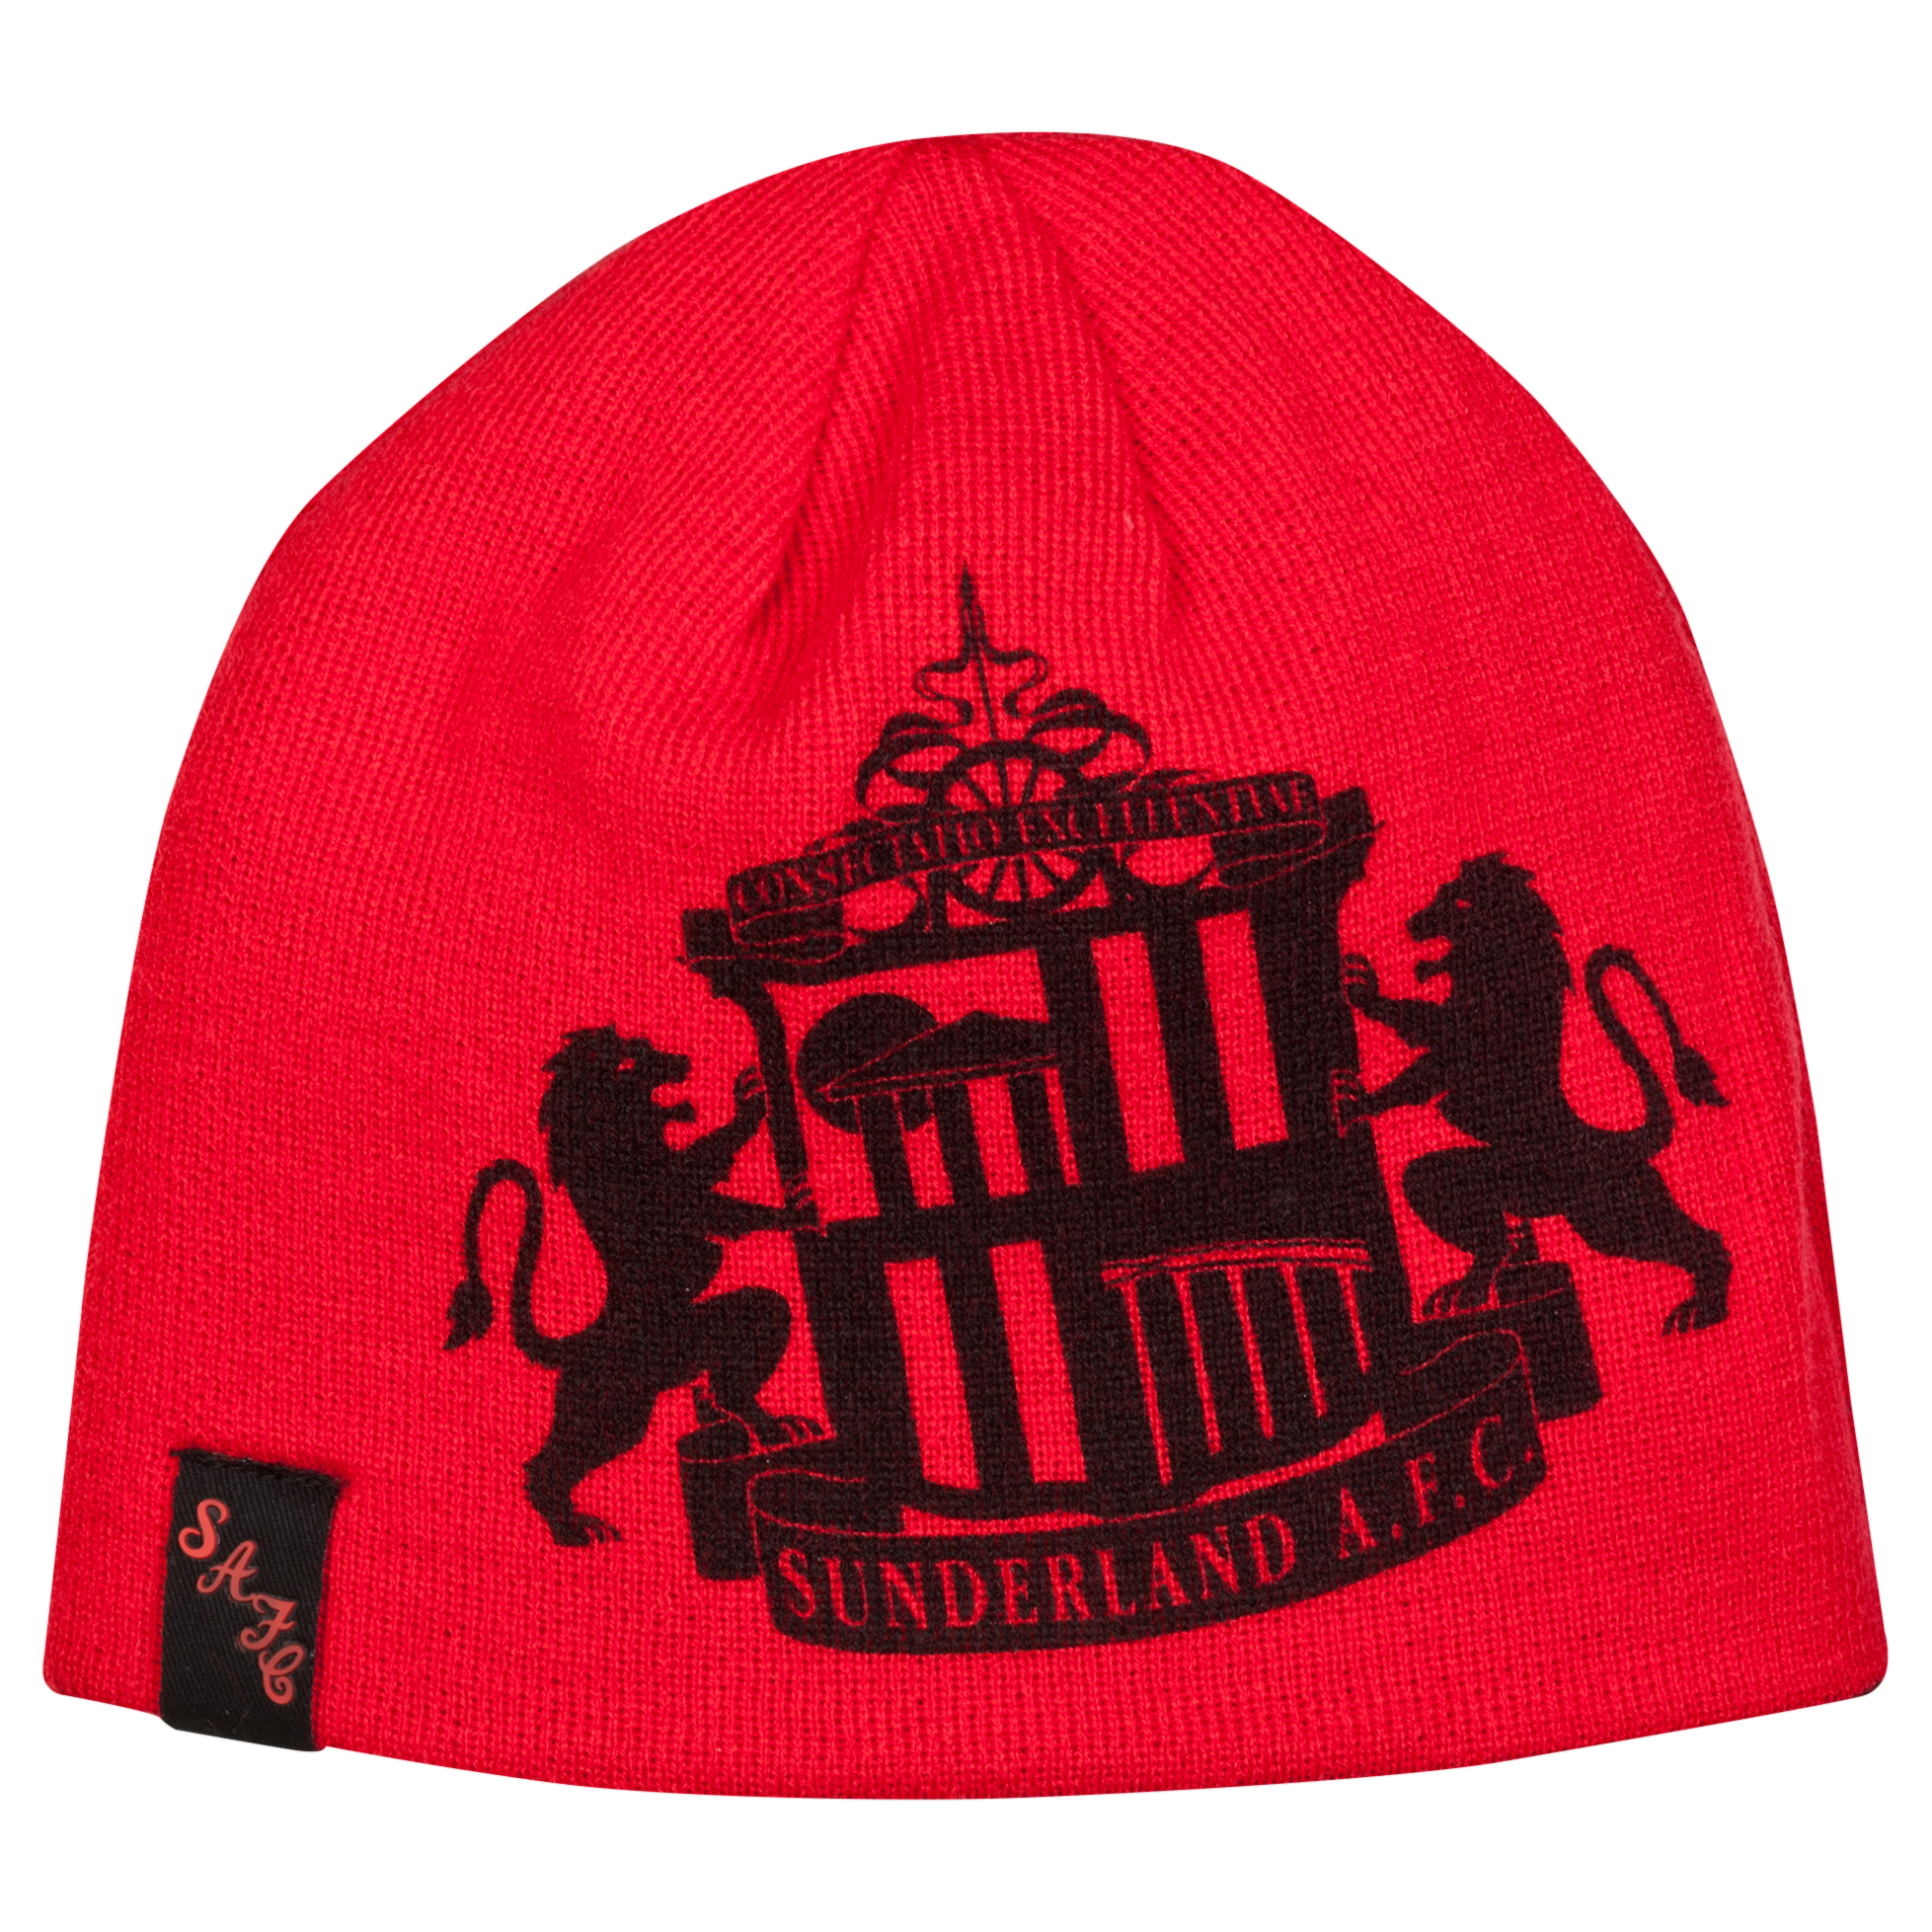 Sunderland Hat - Red/Black - Adult